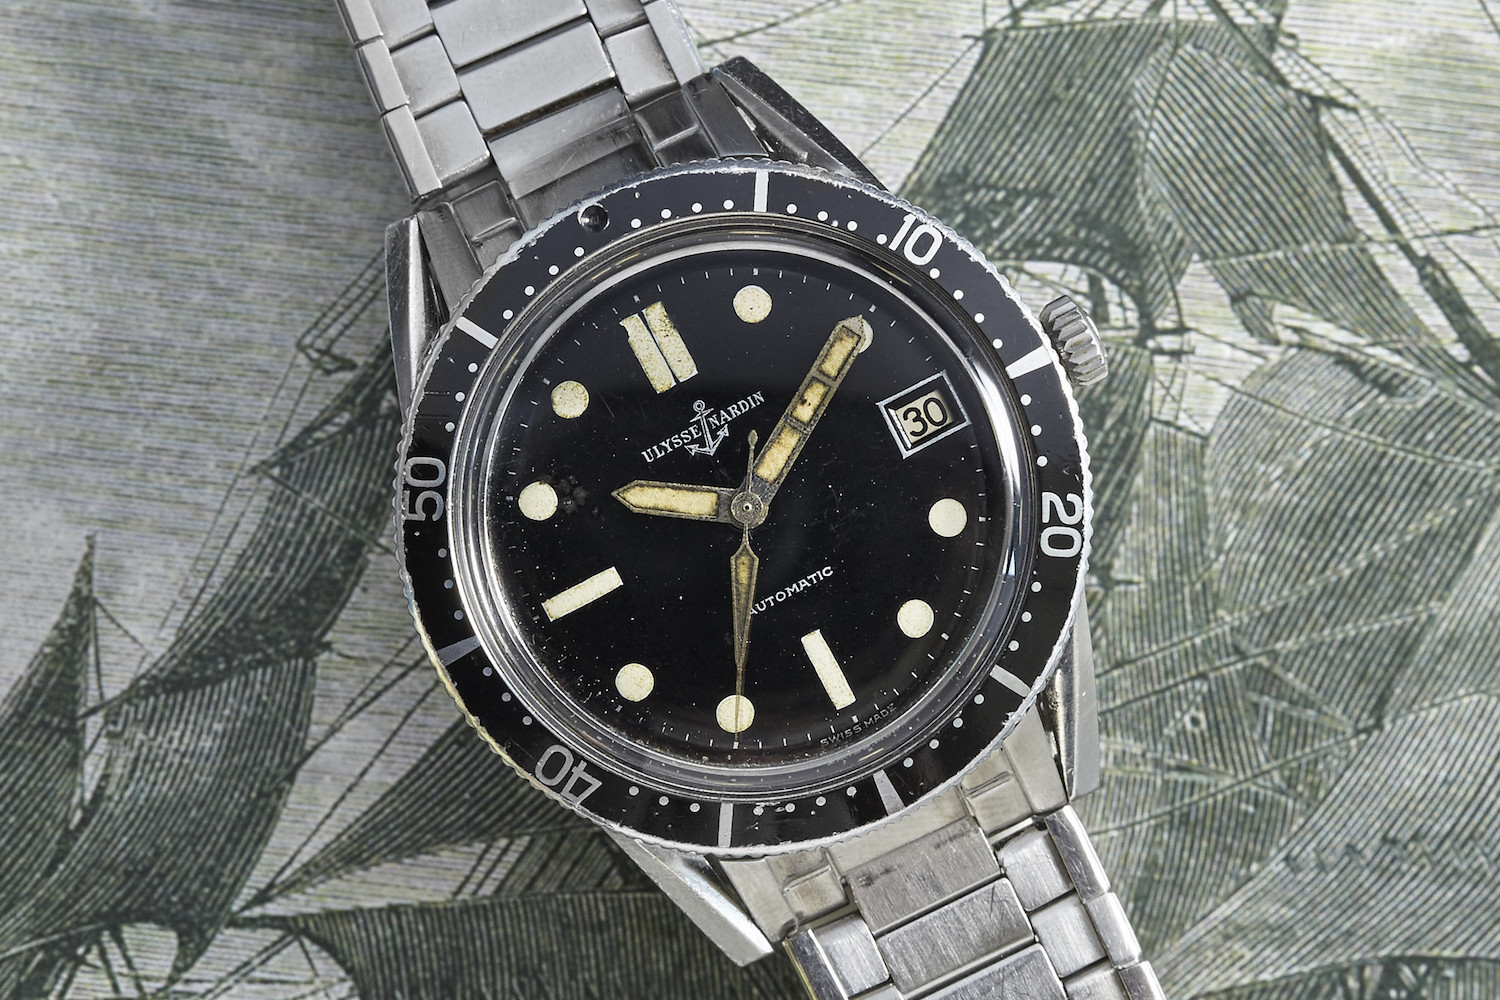 Ulysse Nardin Diver 1960s - Source Analog Shift